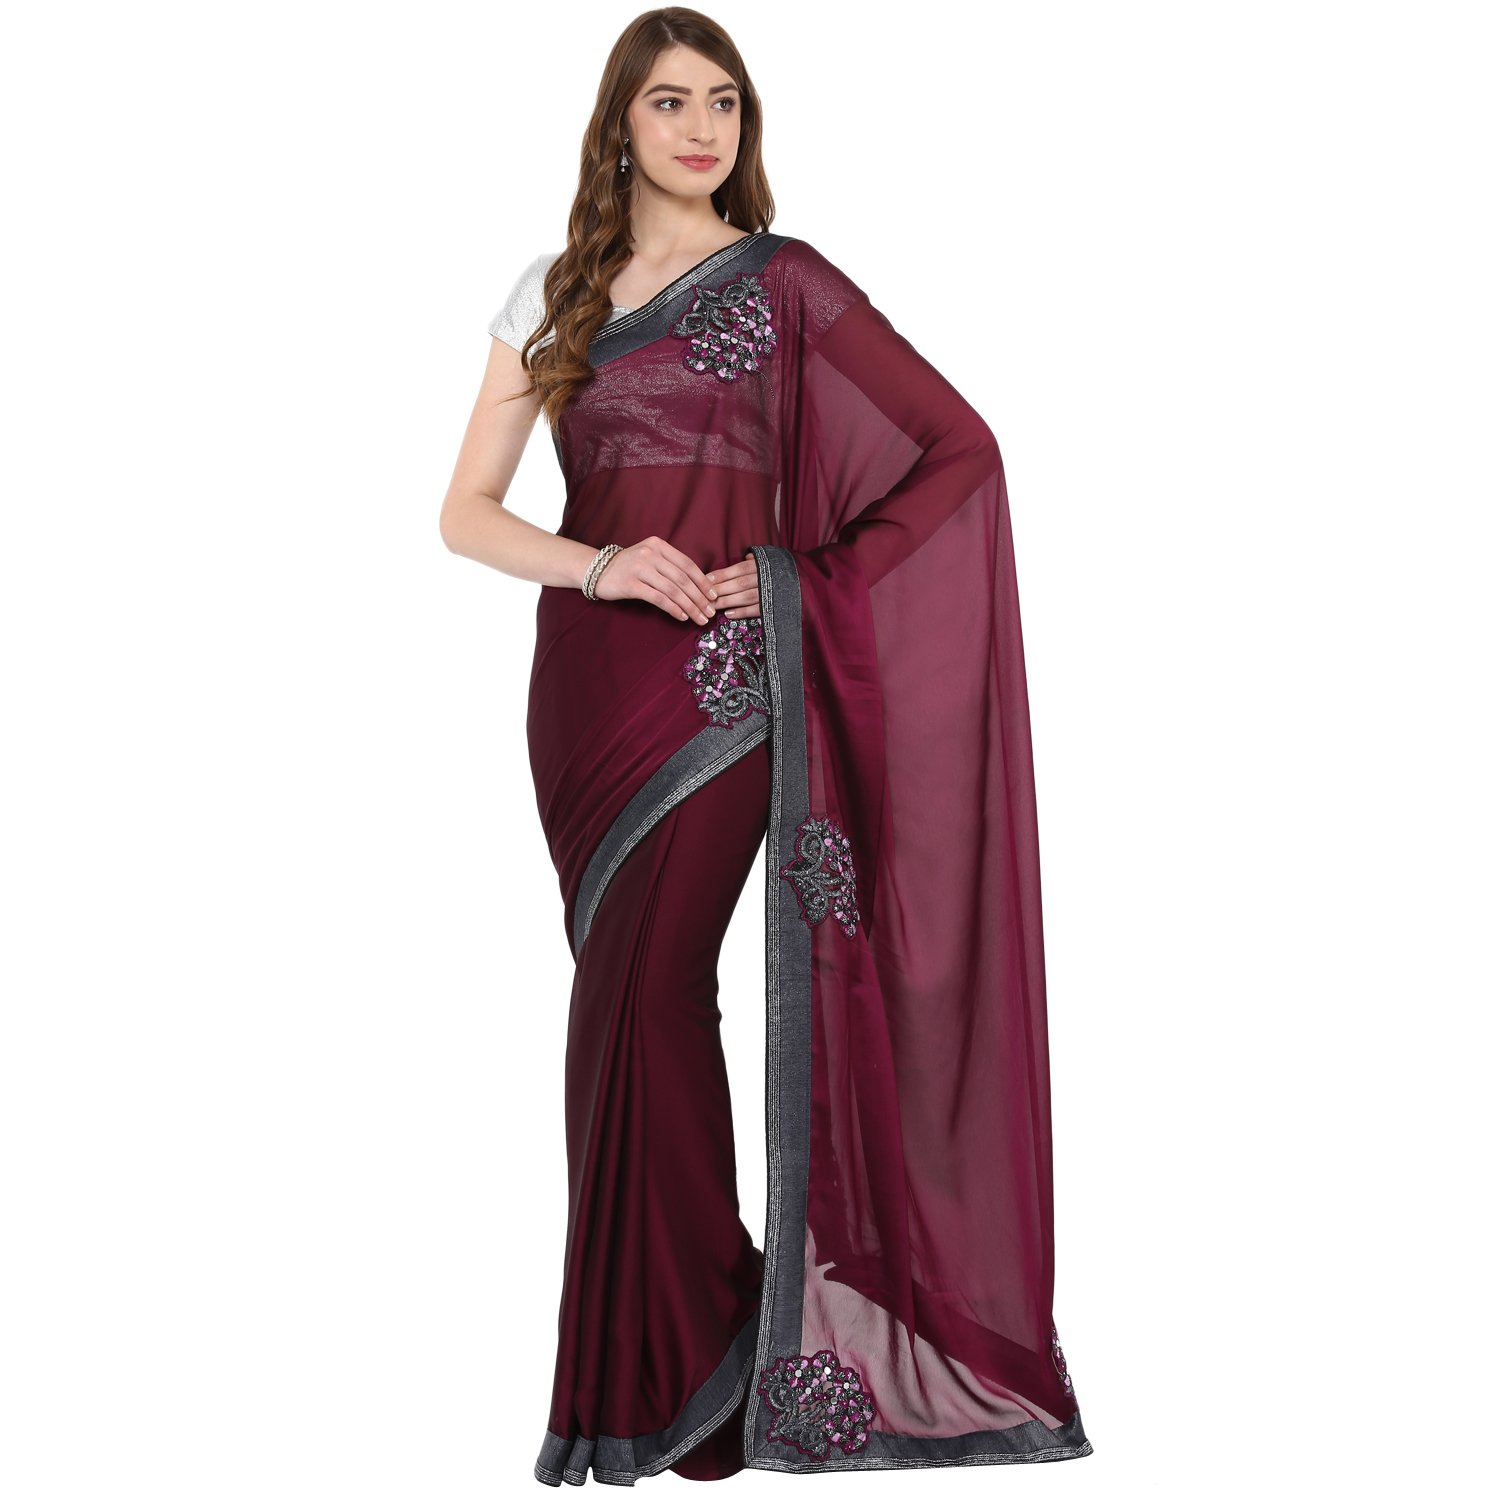 Fasherati Vine Color Silk Georgette Sari With Embroided Border Mirror Work With Blouse For Women